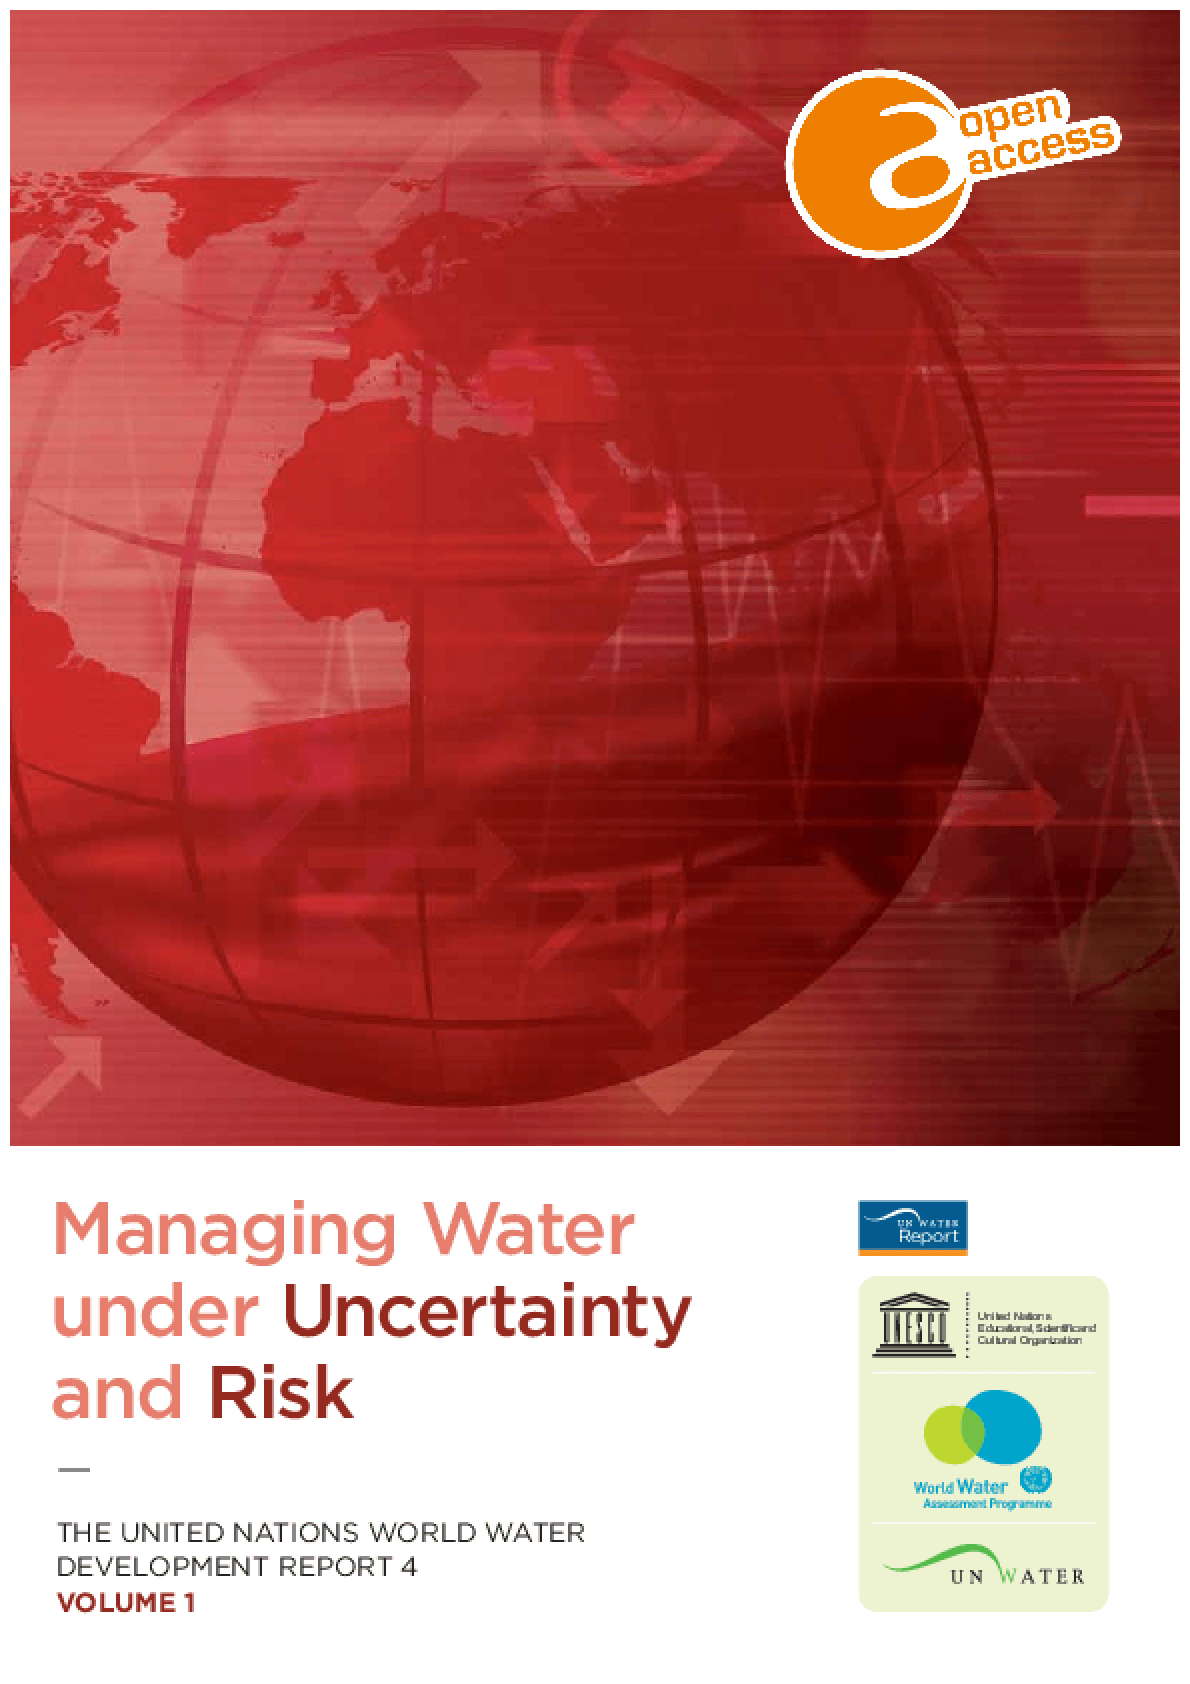 World Water Development Report 4: Managing Water Under Uncertainty and Risk